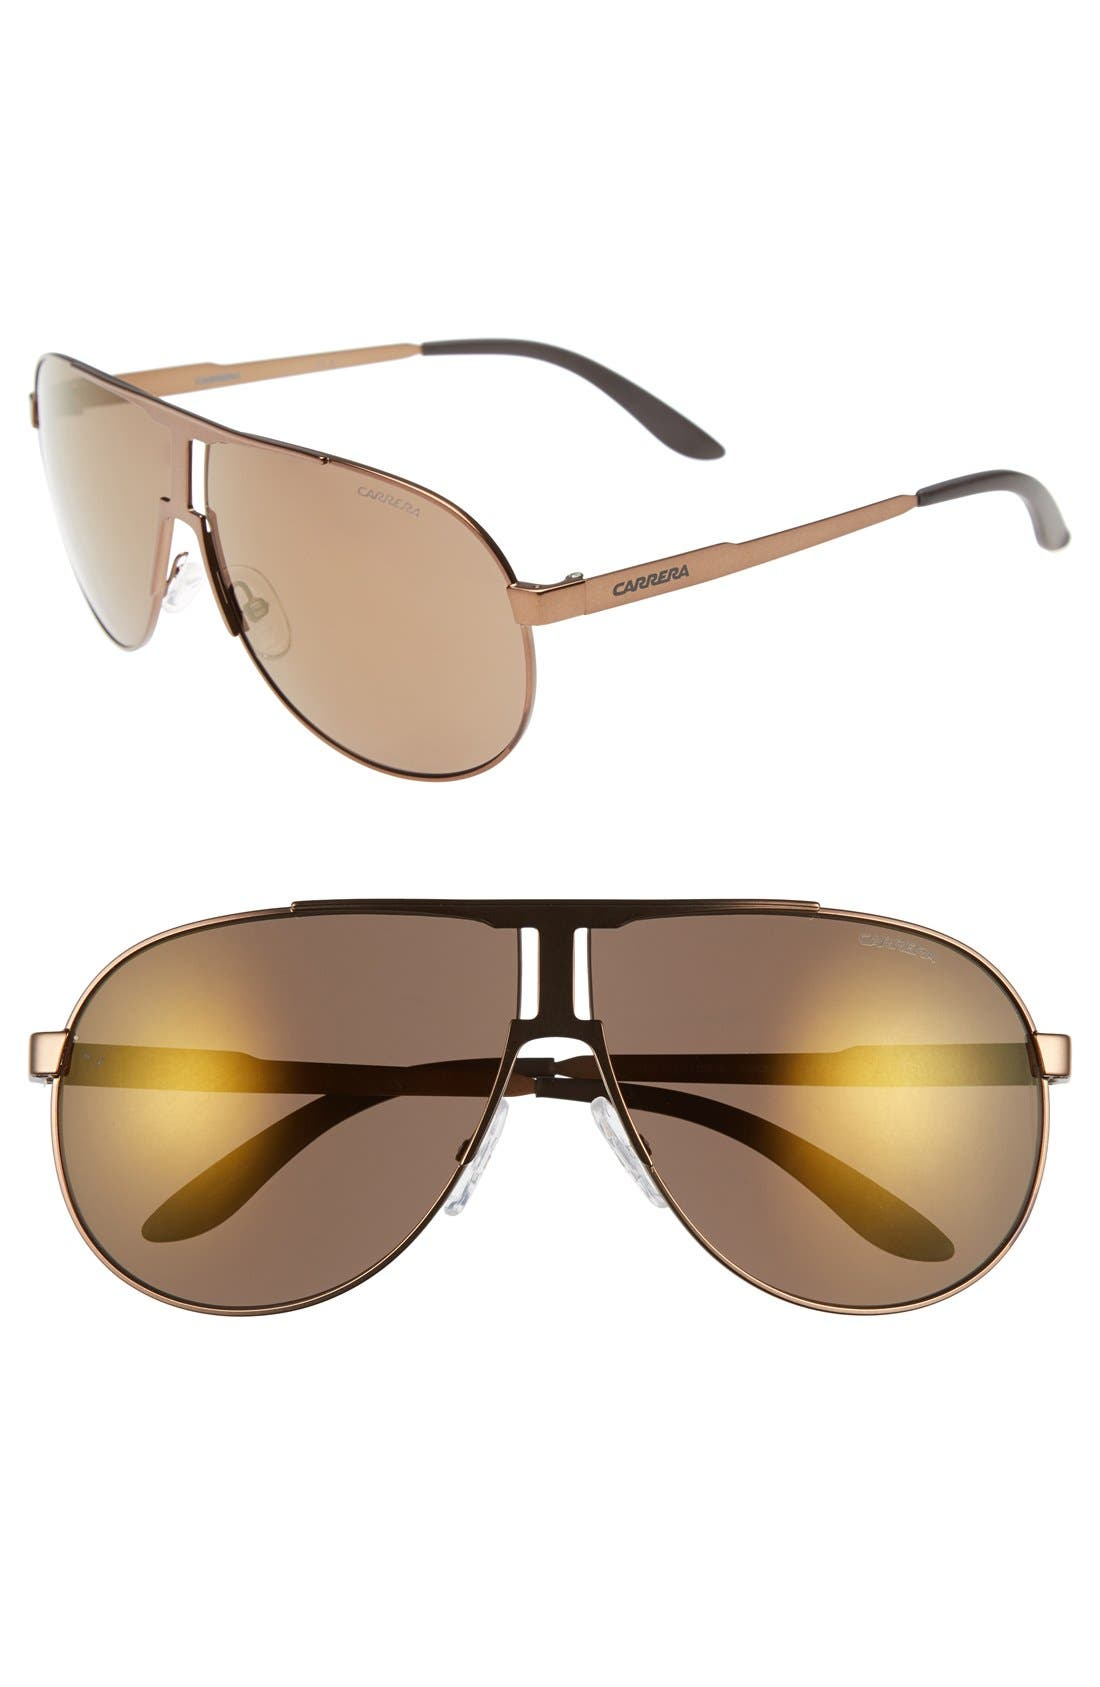 64mm Aviator Sunglasses,                             Main thumbnail 1, color,                             Light Brown/ Violet